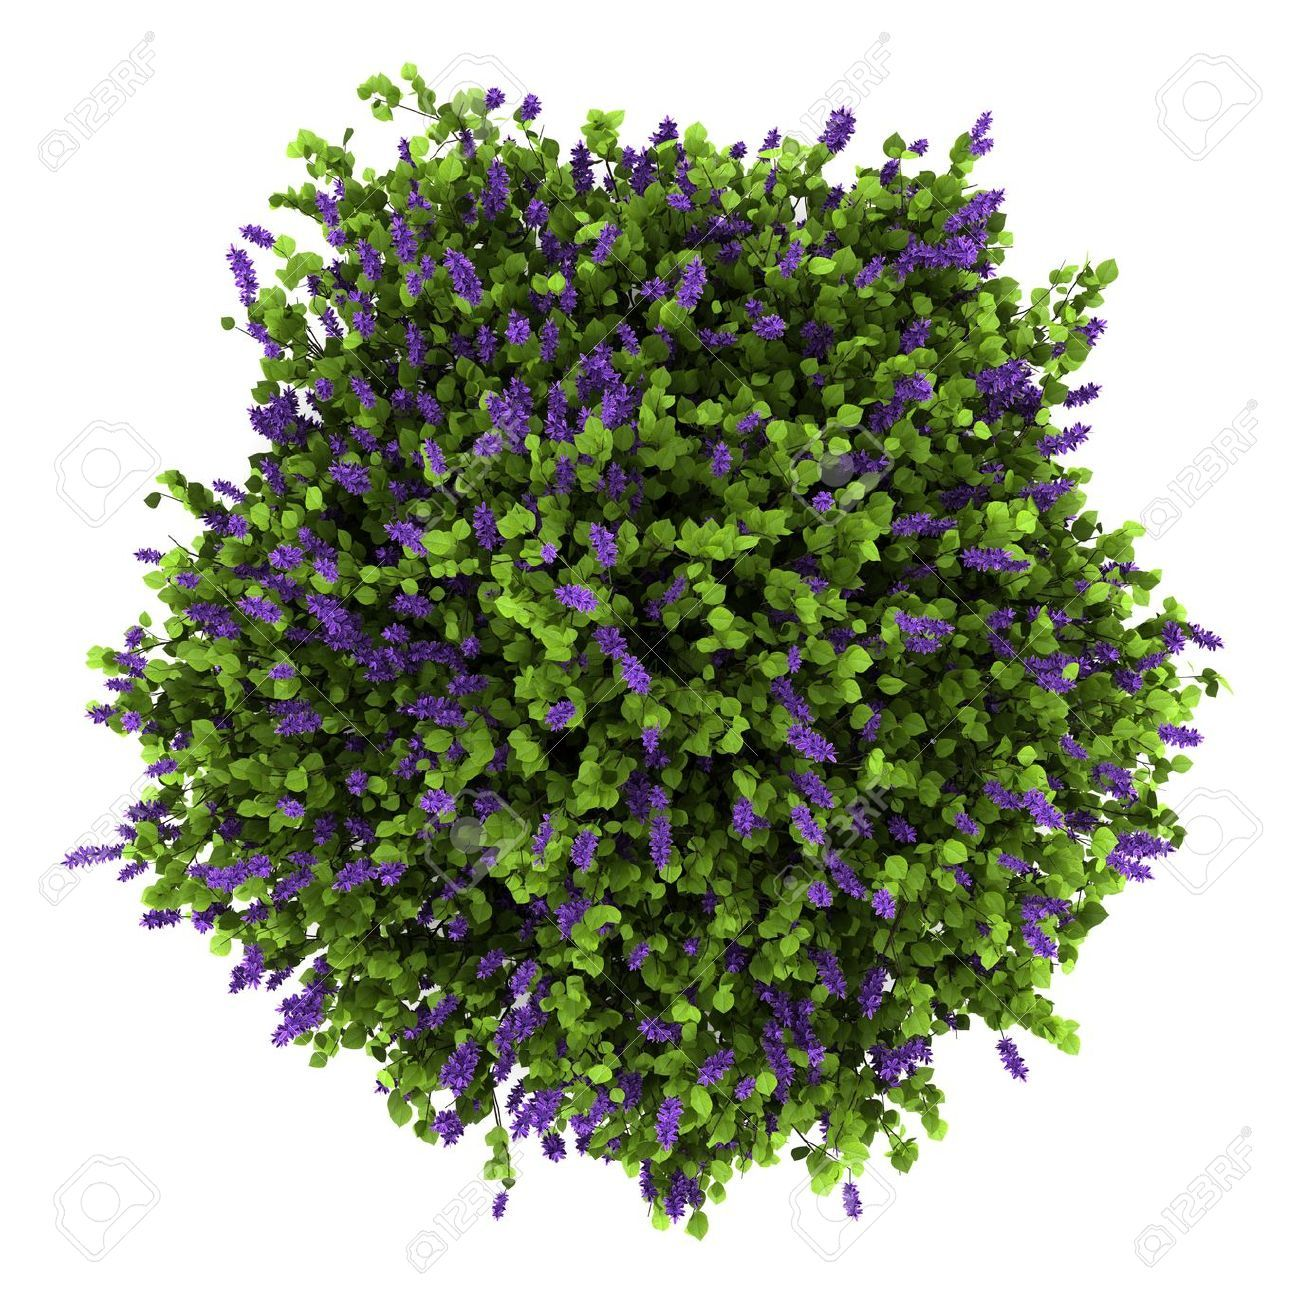 13990833 Top View Of Lilac Flowers Bush Isolated On White Background Stock Photo Jpg 1300 1300 Trees Top View Shrubs For Landscaping Flowering Trees